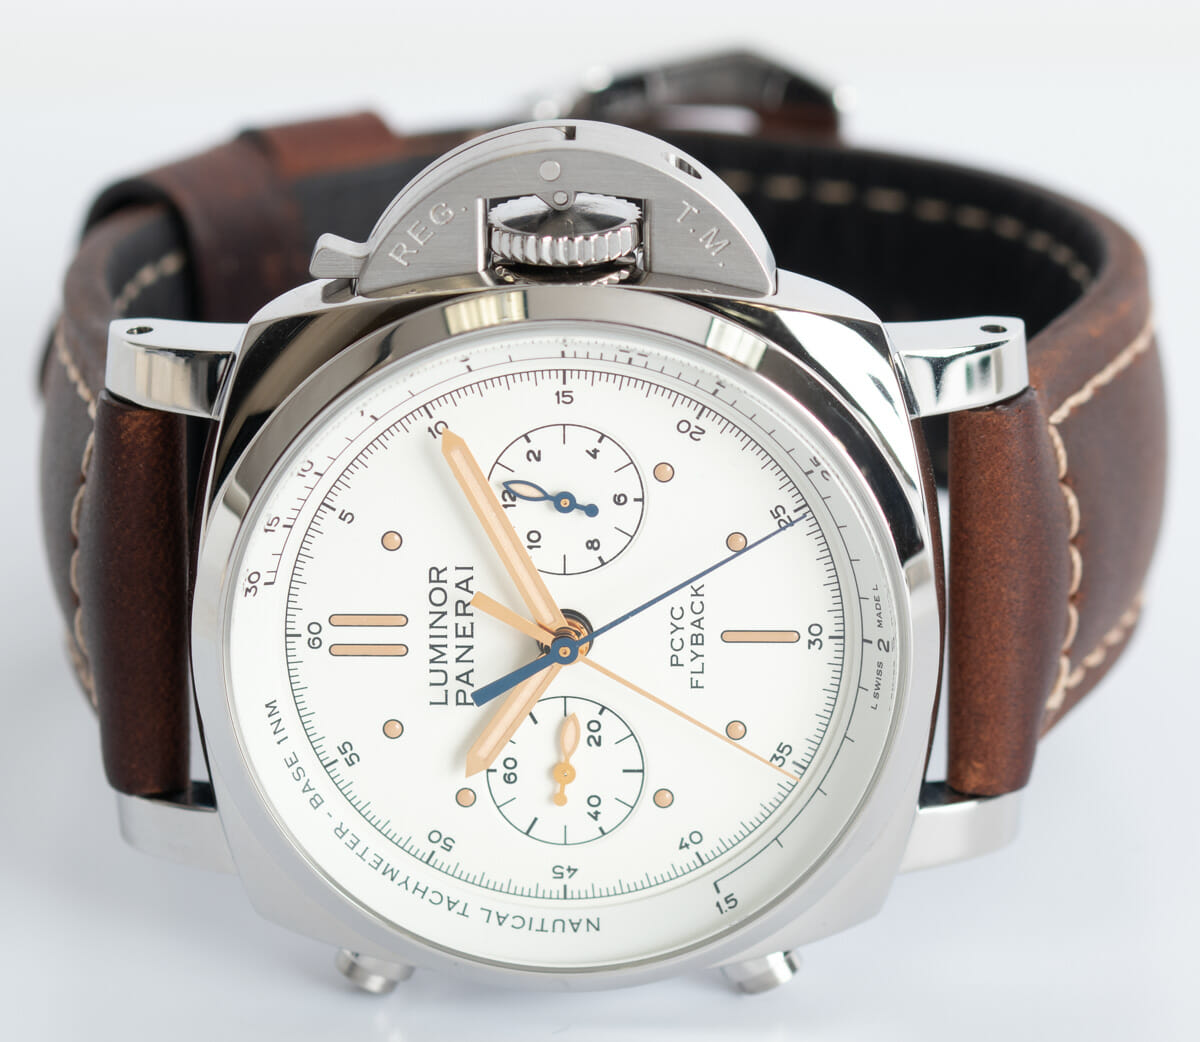 Front View of Luminor 1950 PCYC Flyback Chronograph